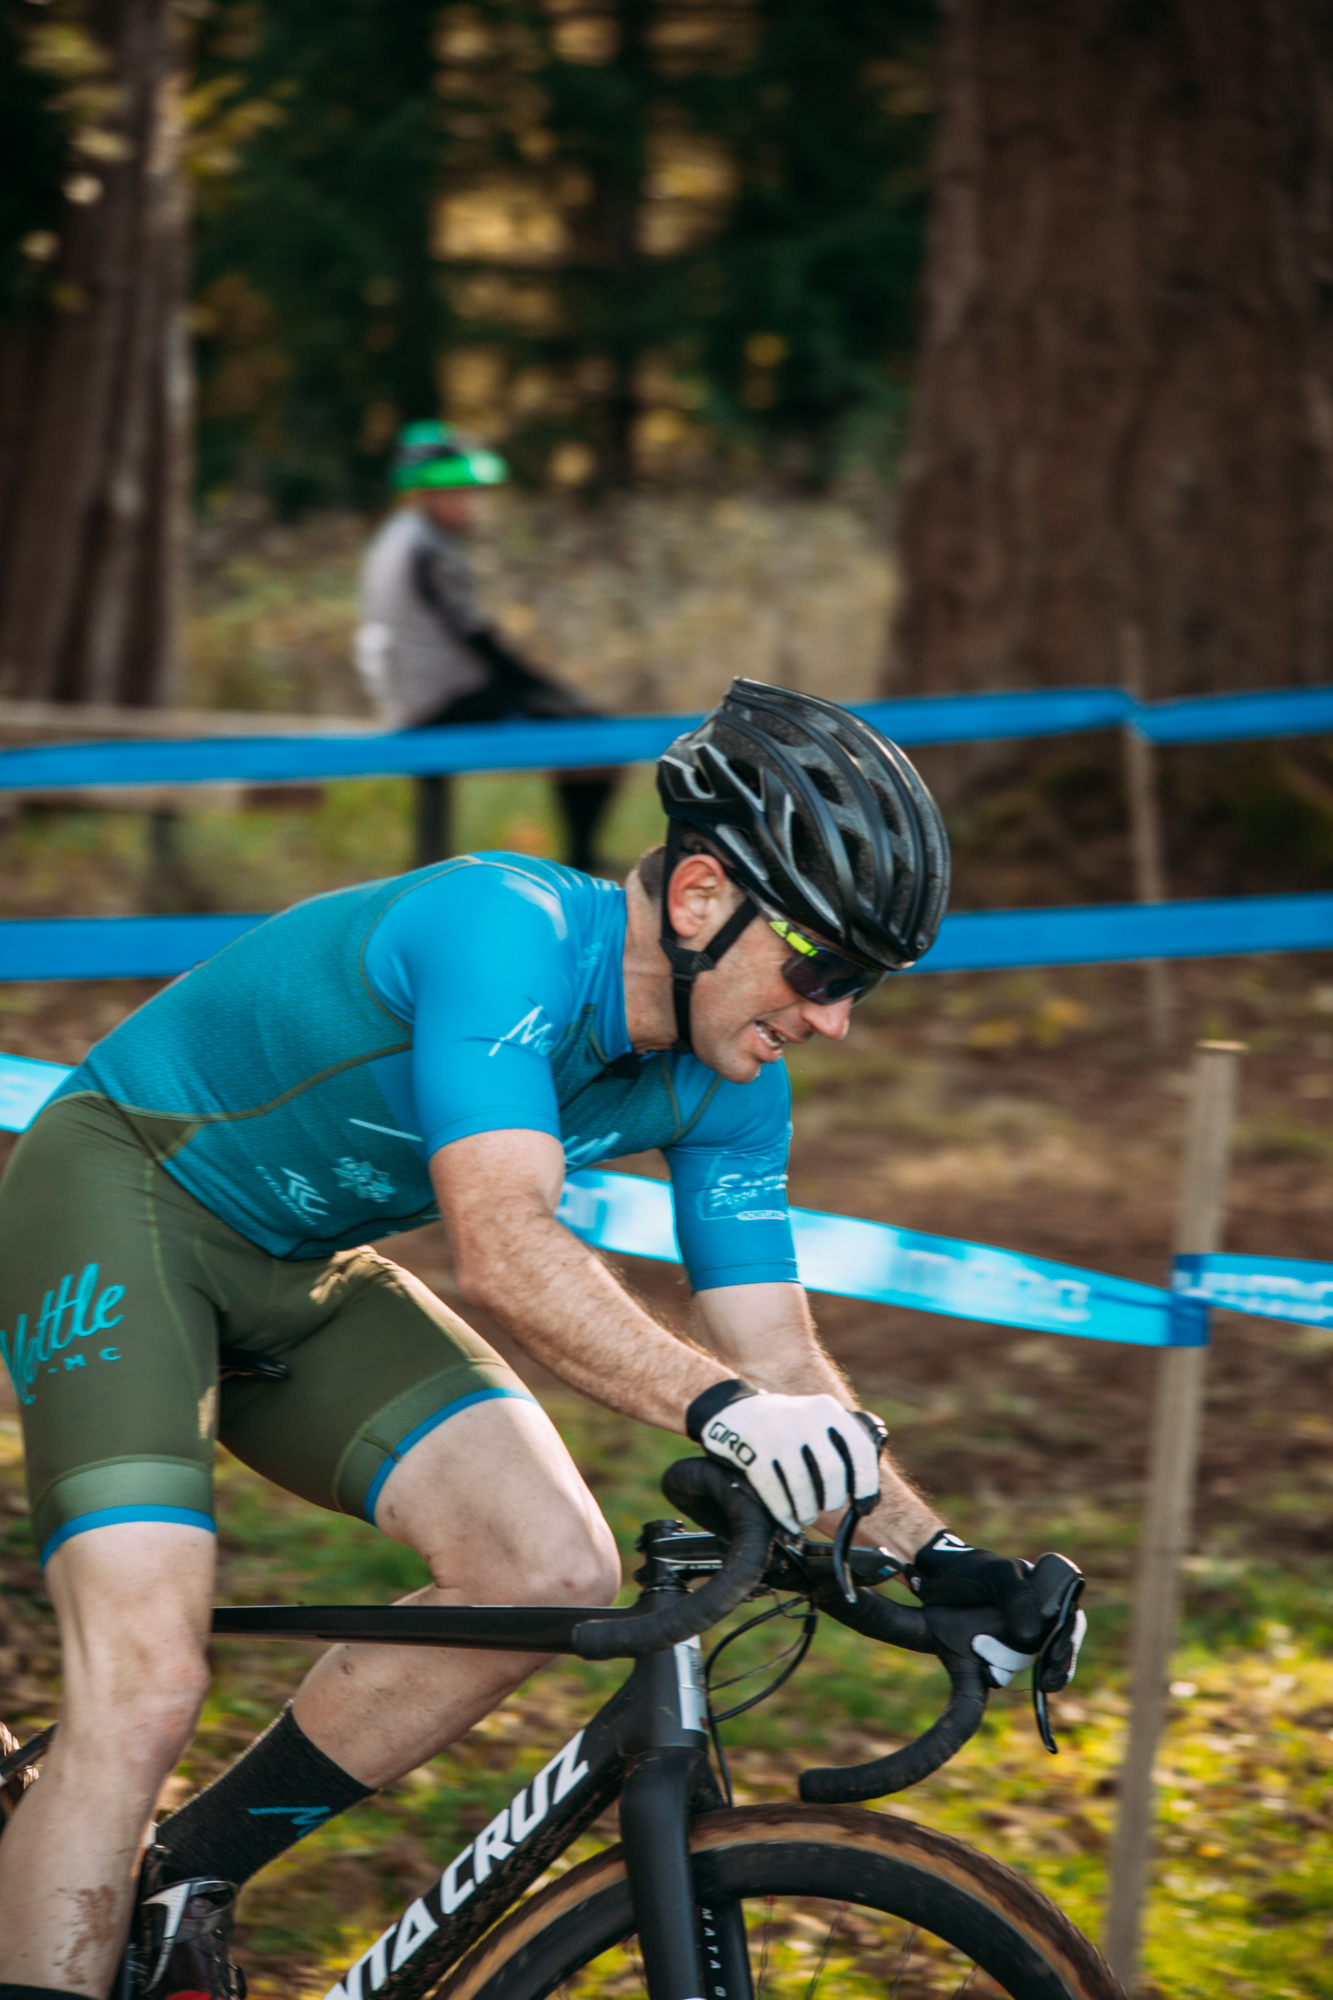 Cyclocross18_CCCX_RainierHS-149-mettlecycling.jpg